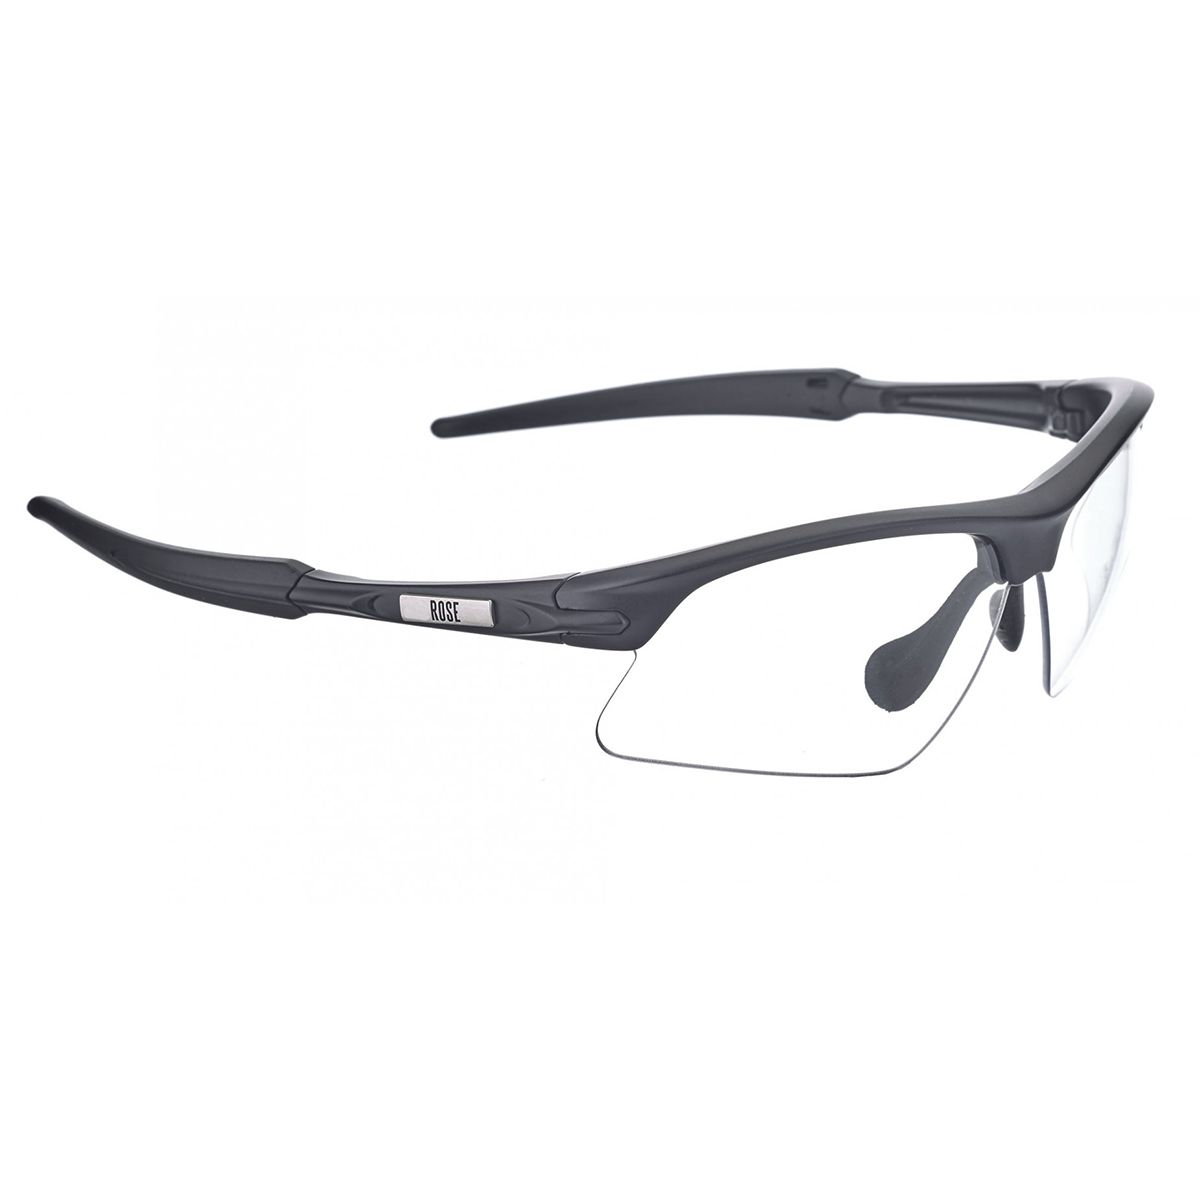 PS 09 Photochromic glasses